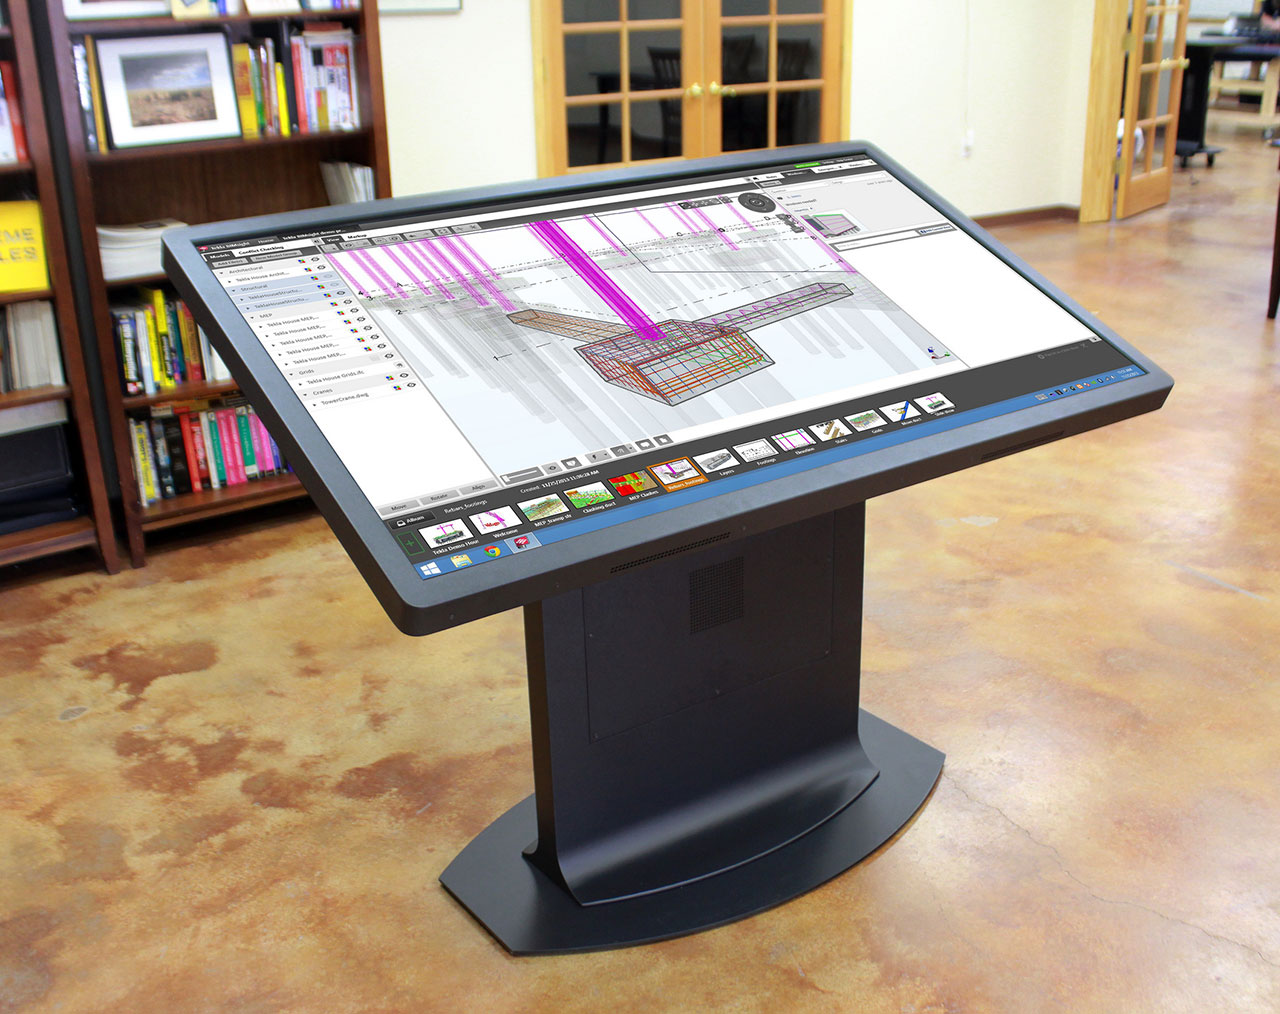 Image for the post: 'Multitouch Drafting Table: A New Take on the Mechanical Desk'